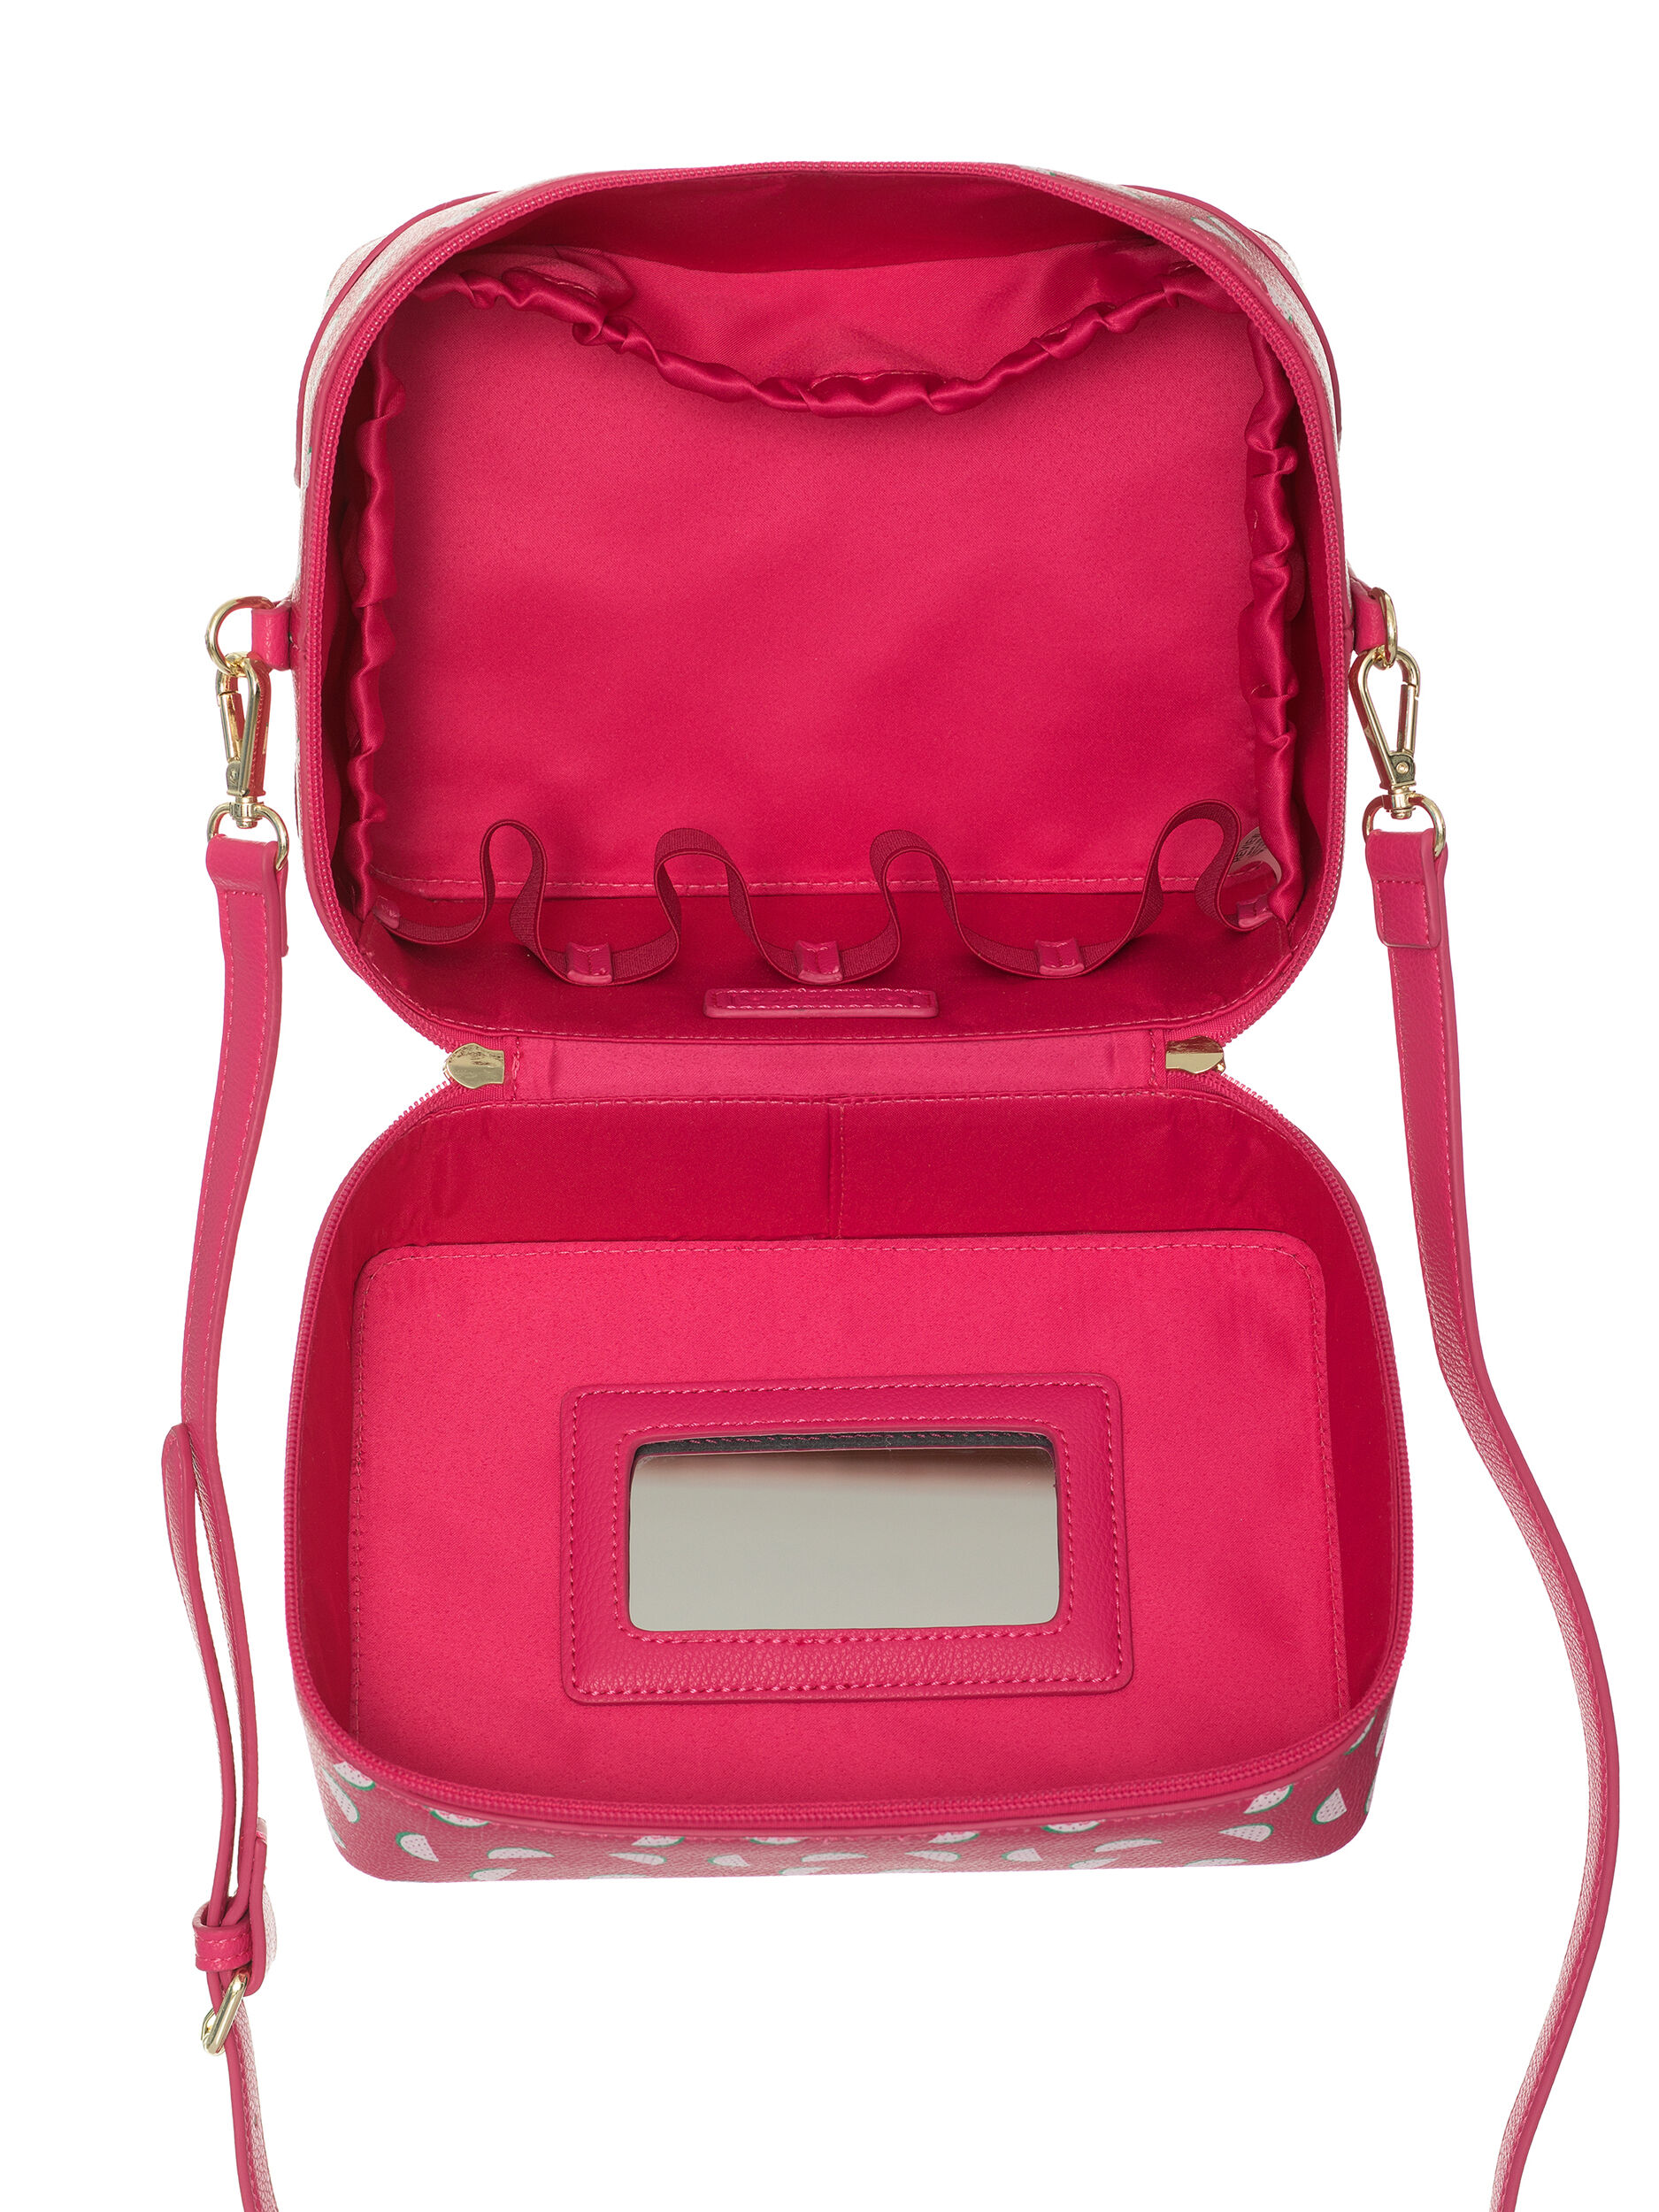 Melon Pop Vanity Case